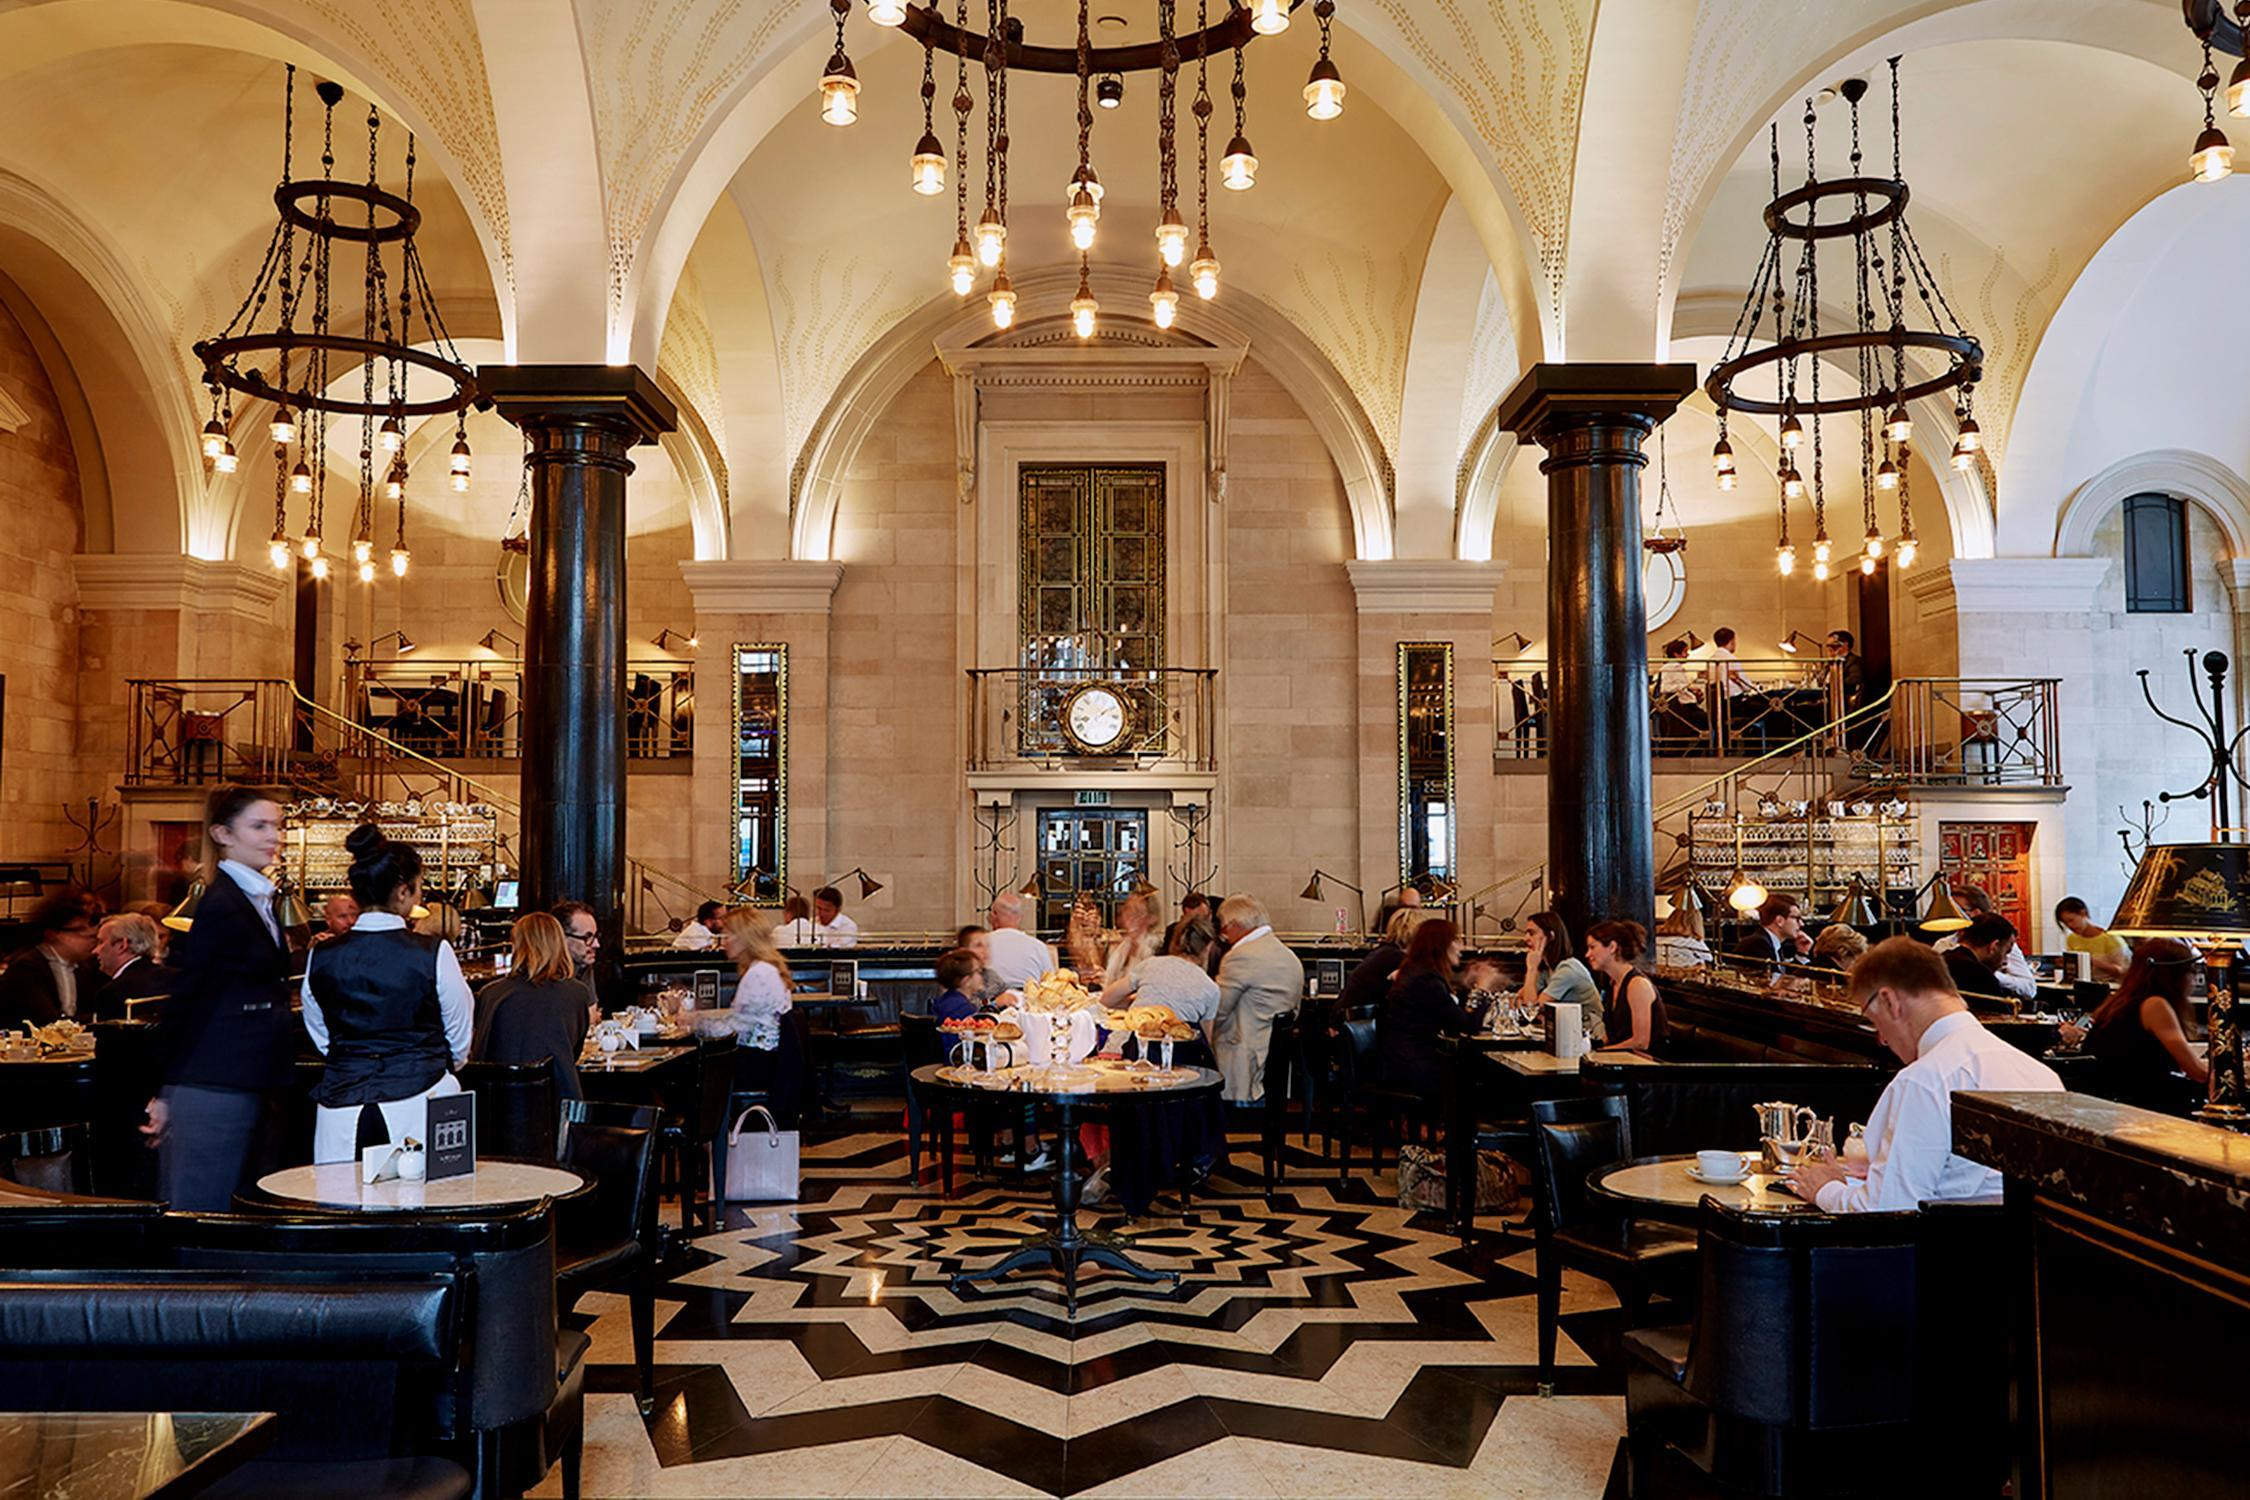 The dining room at the Wolseley in London, with a star-pattern tiled floor, black chandeliers hanging pendant bulbs, and two waiters standing attention.